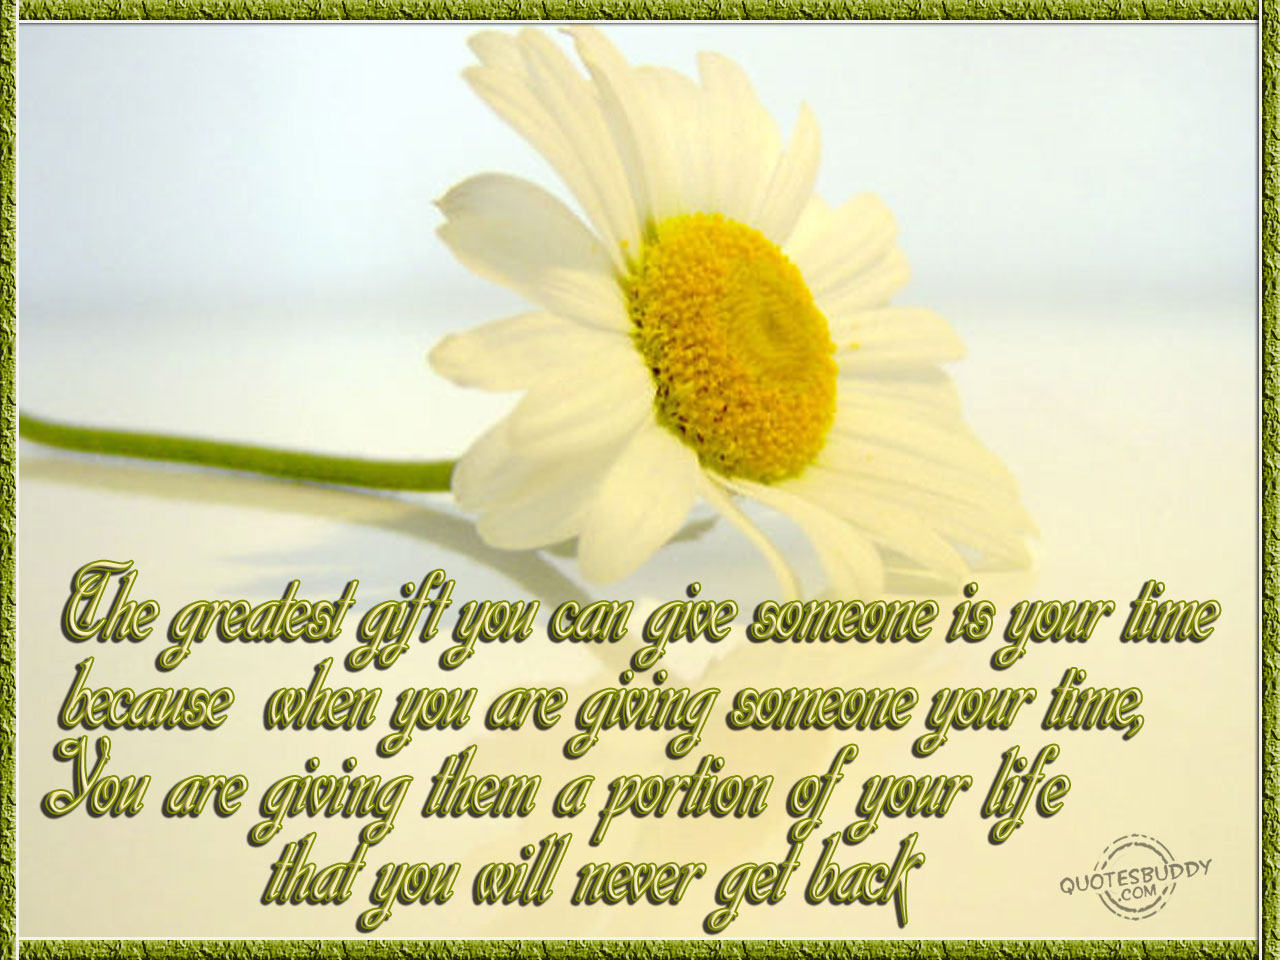 The greatest gift you can give someone is your time because when you are giving someone your time, You are giving them a portion of your life that you will never get back